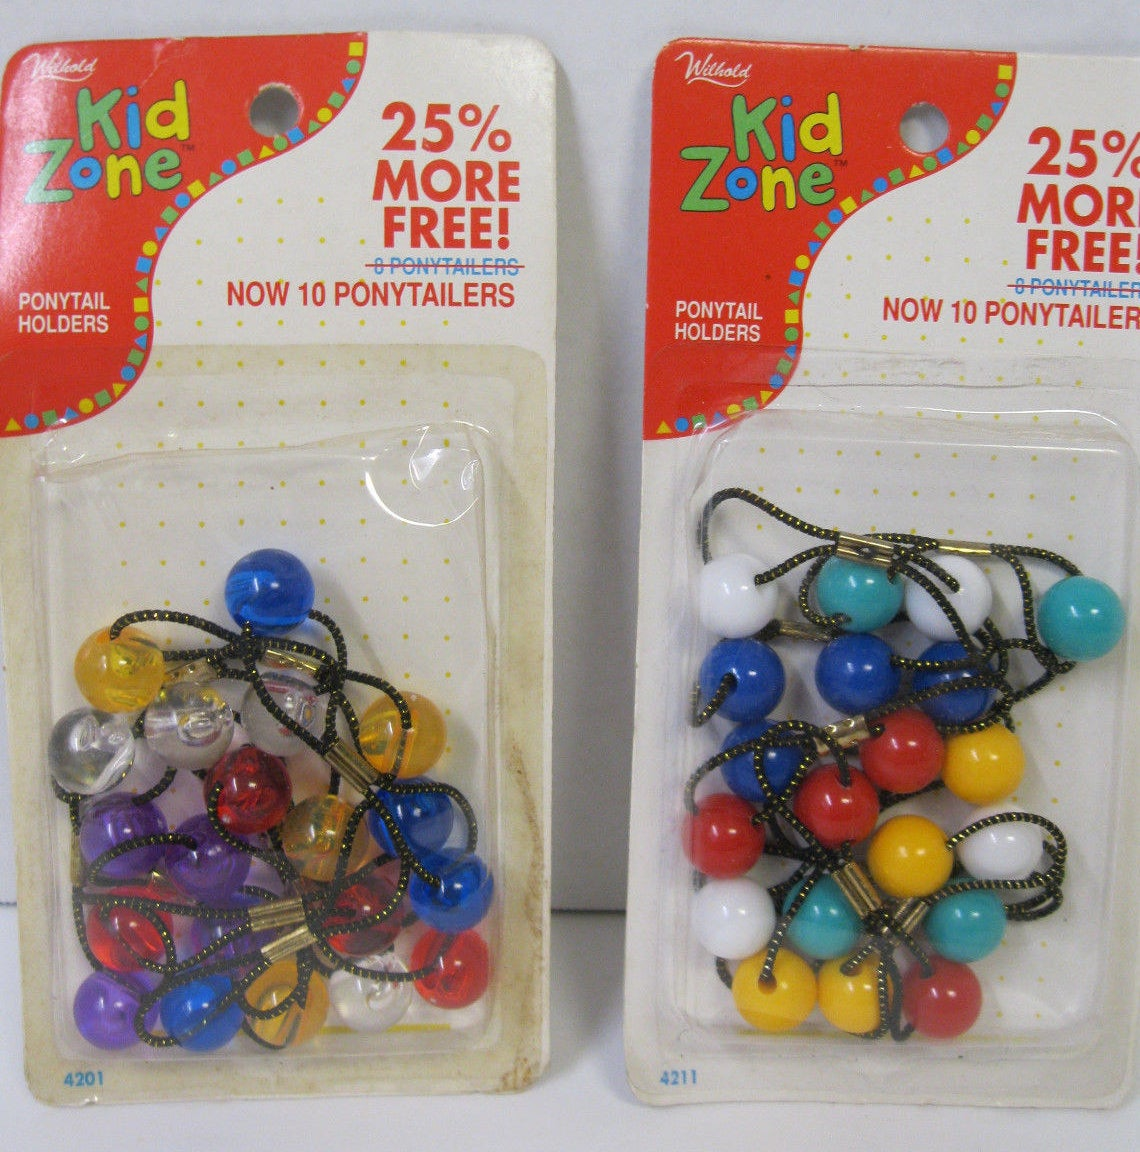 Two boxes of ponytail holders from the 1980s